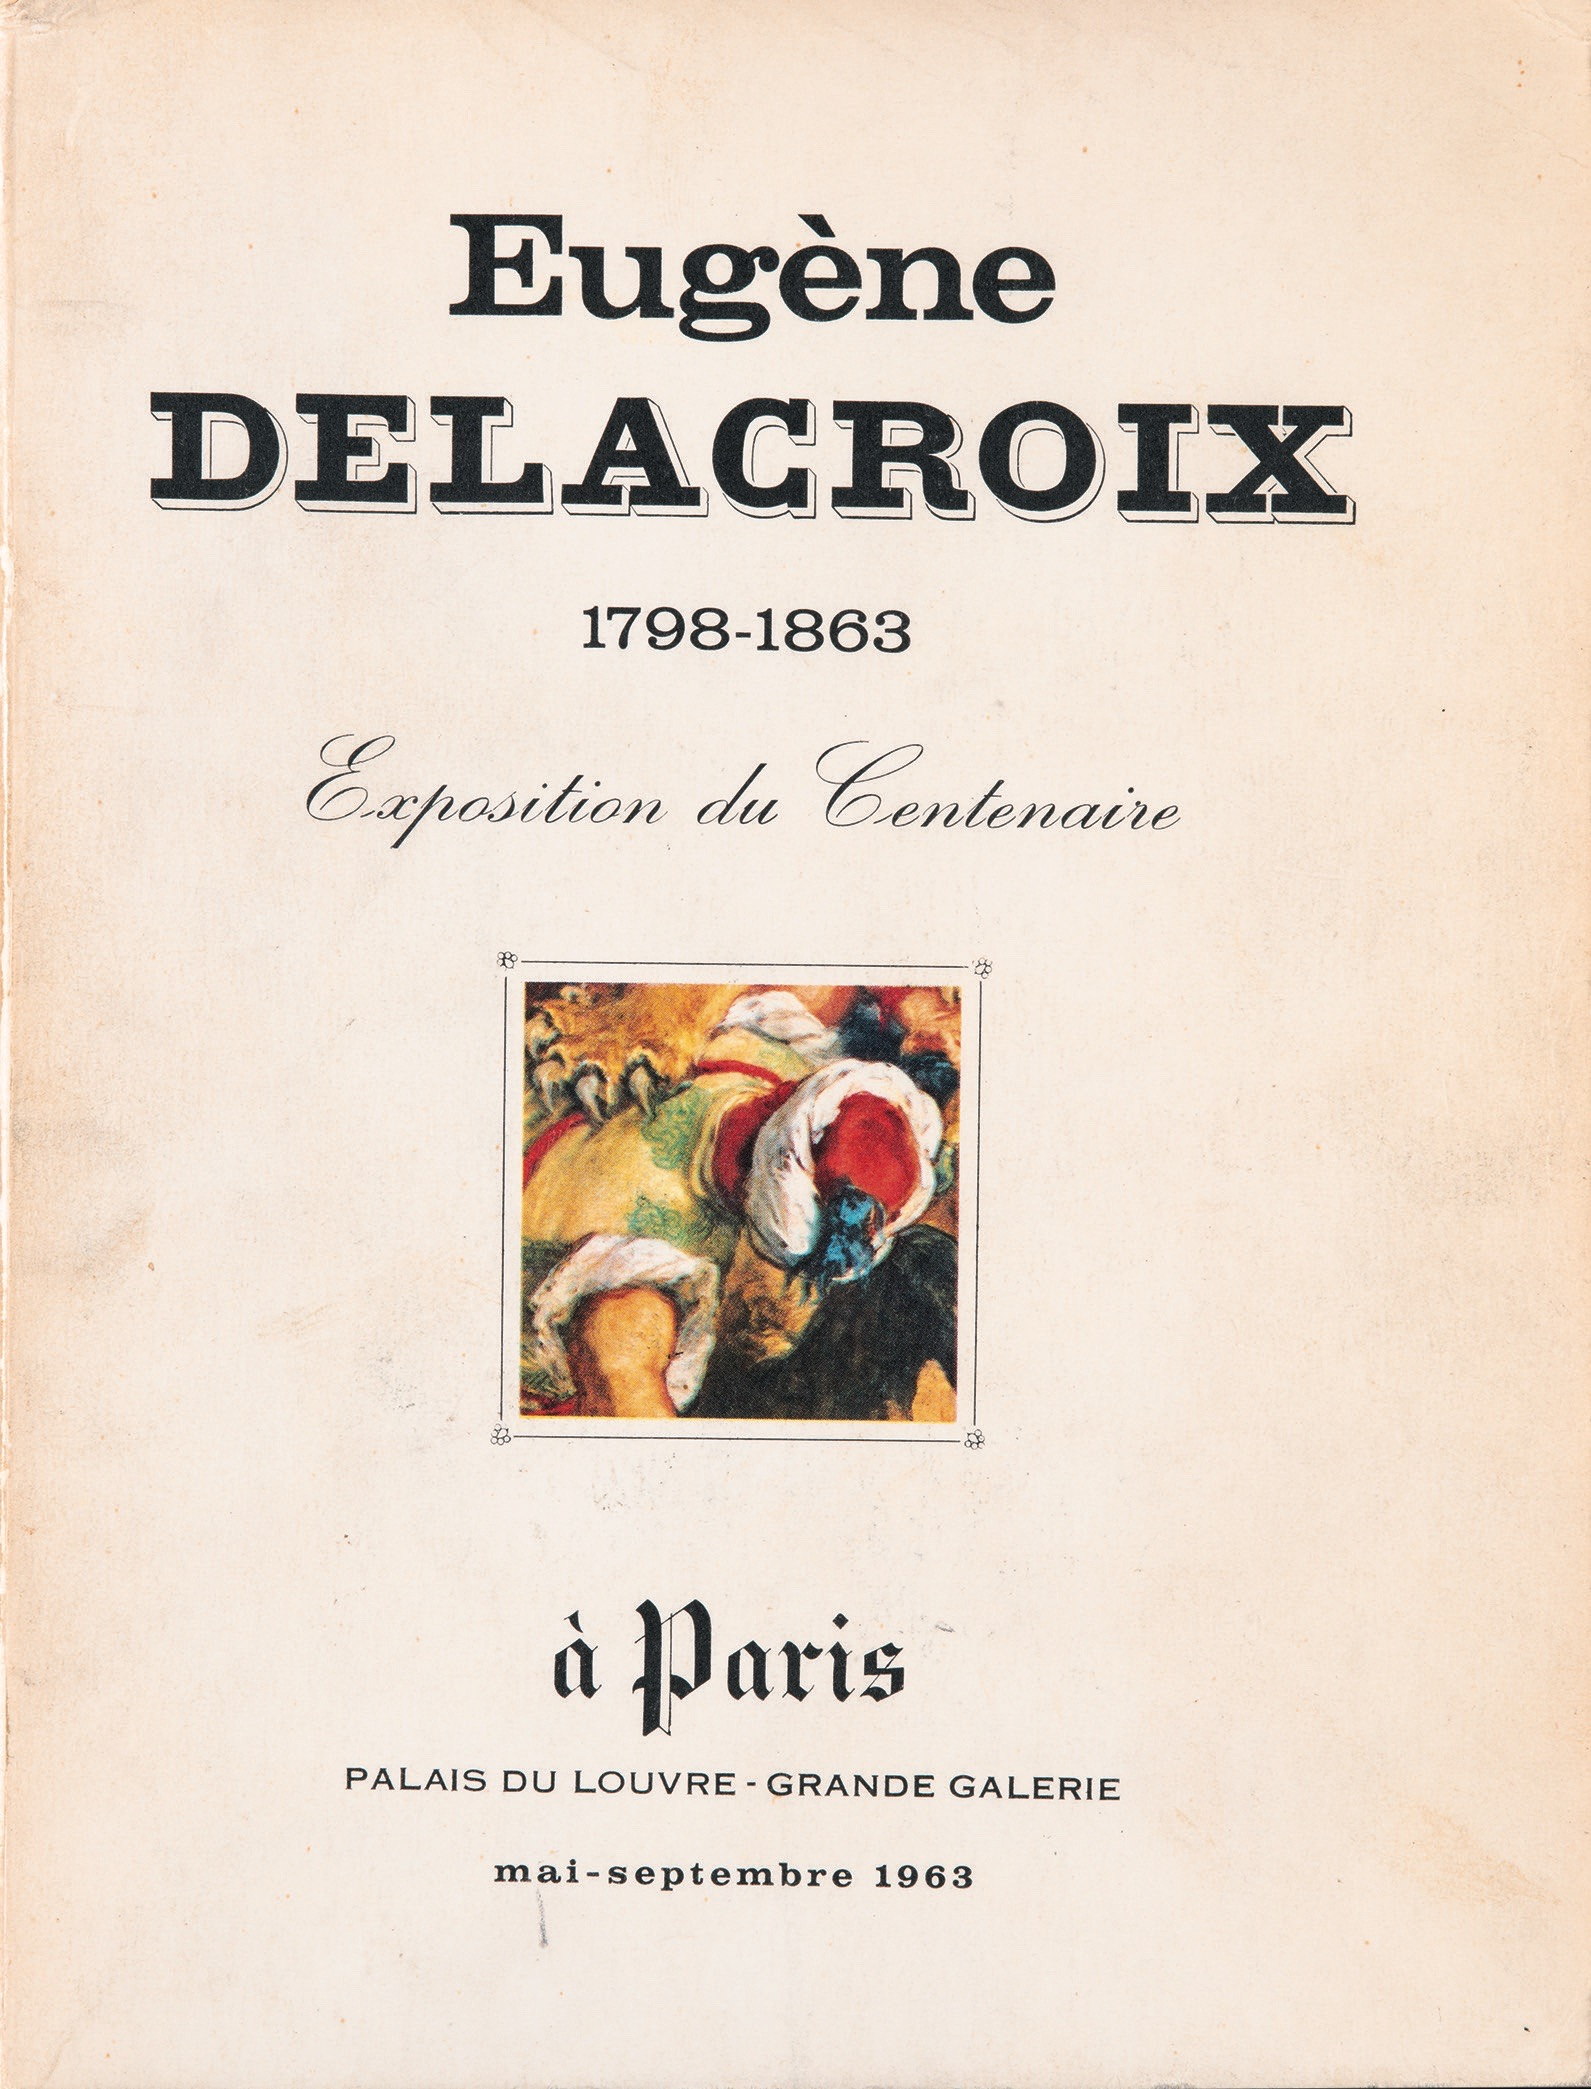 Louvre, Paris, May-September 1963, (Paris: Ministry of Cultural Affairs, 1963): jacket.